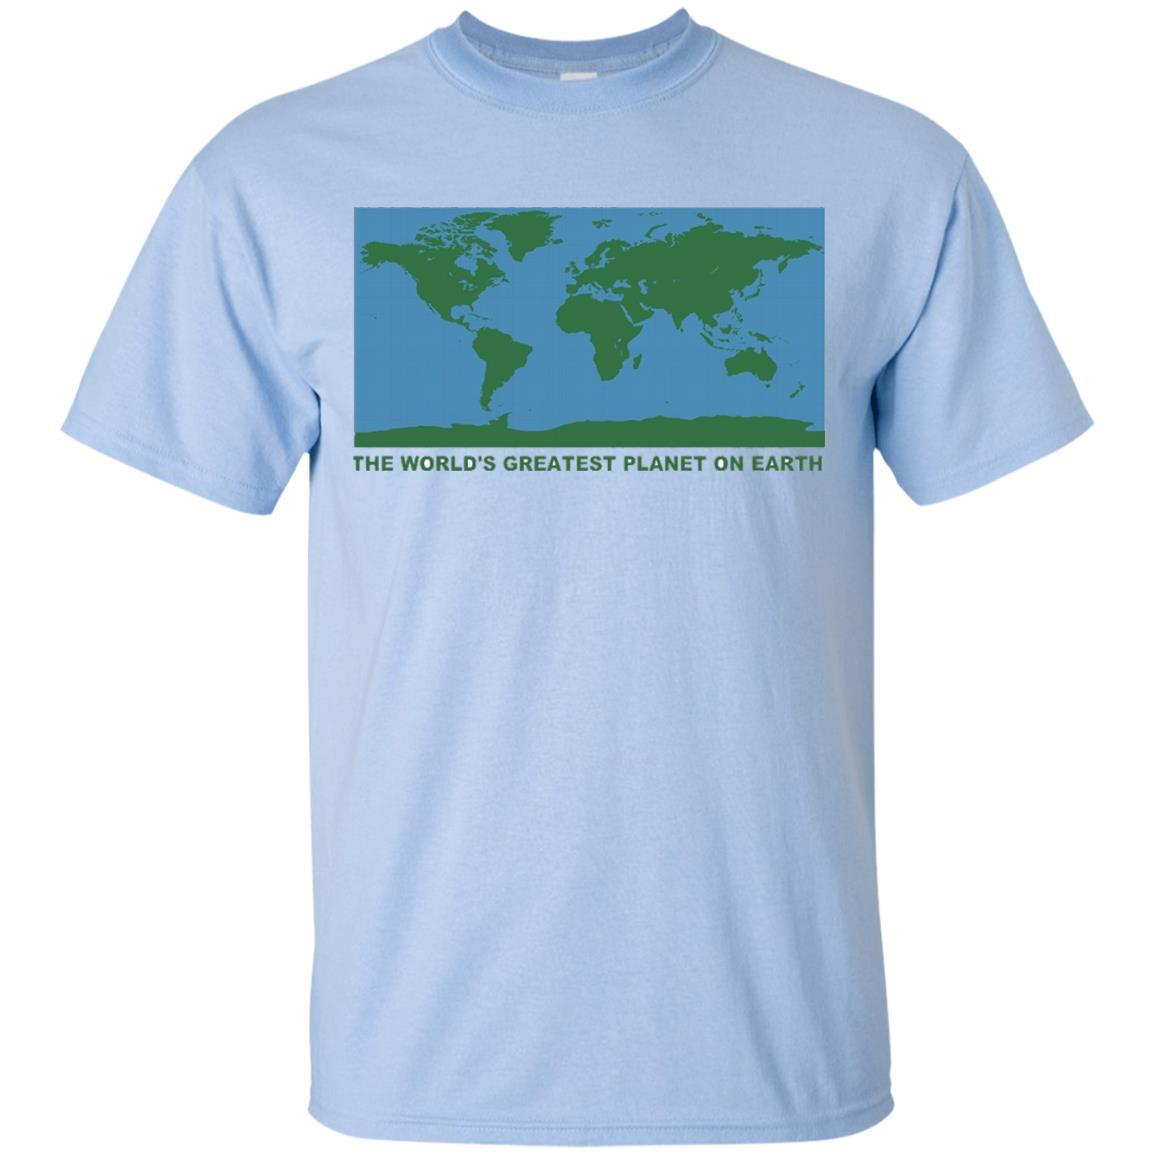 The World's Greatest Planet On Earth T-Shirt - Earth Shirt